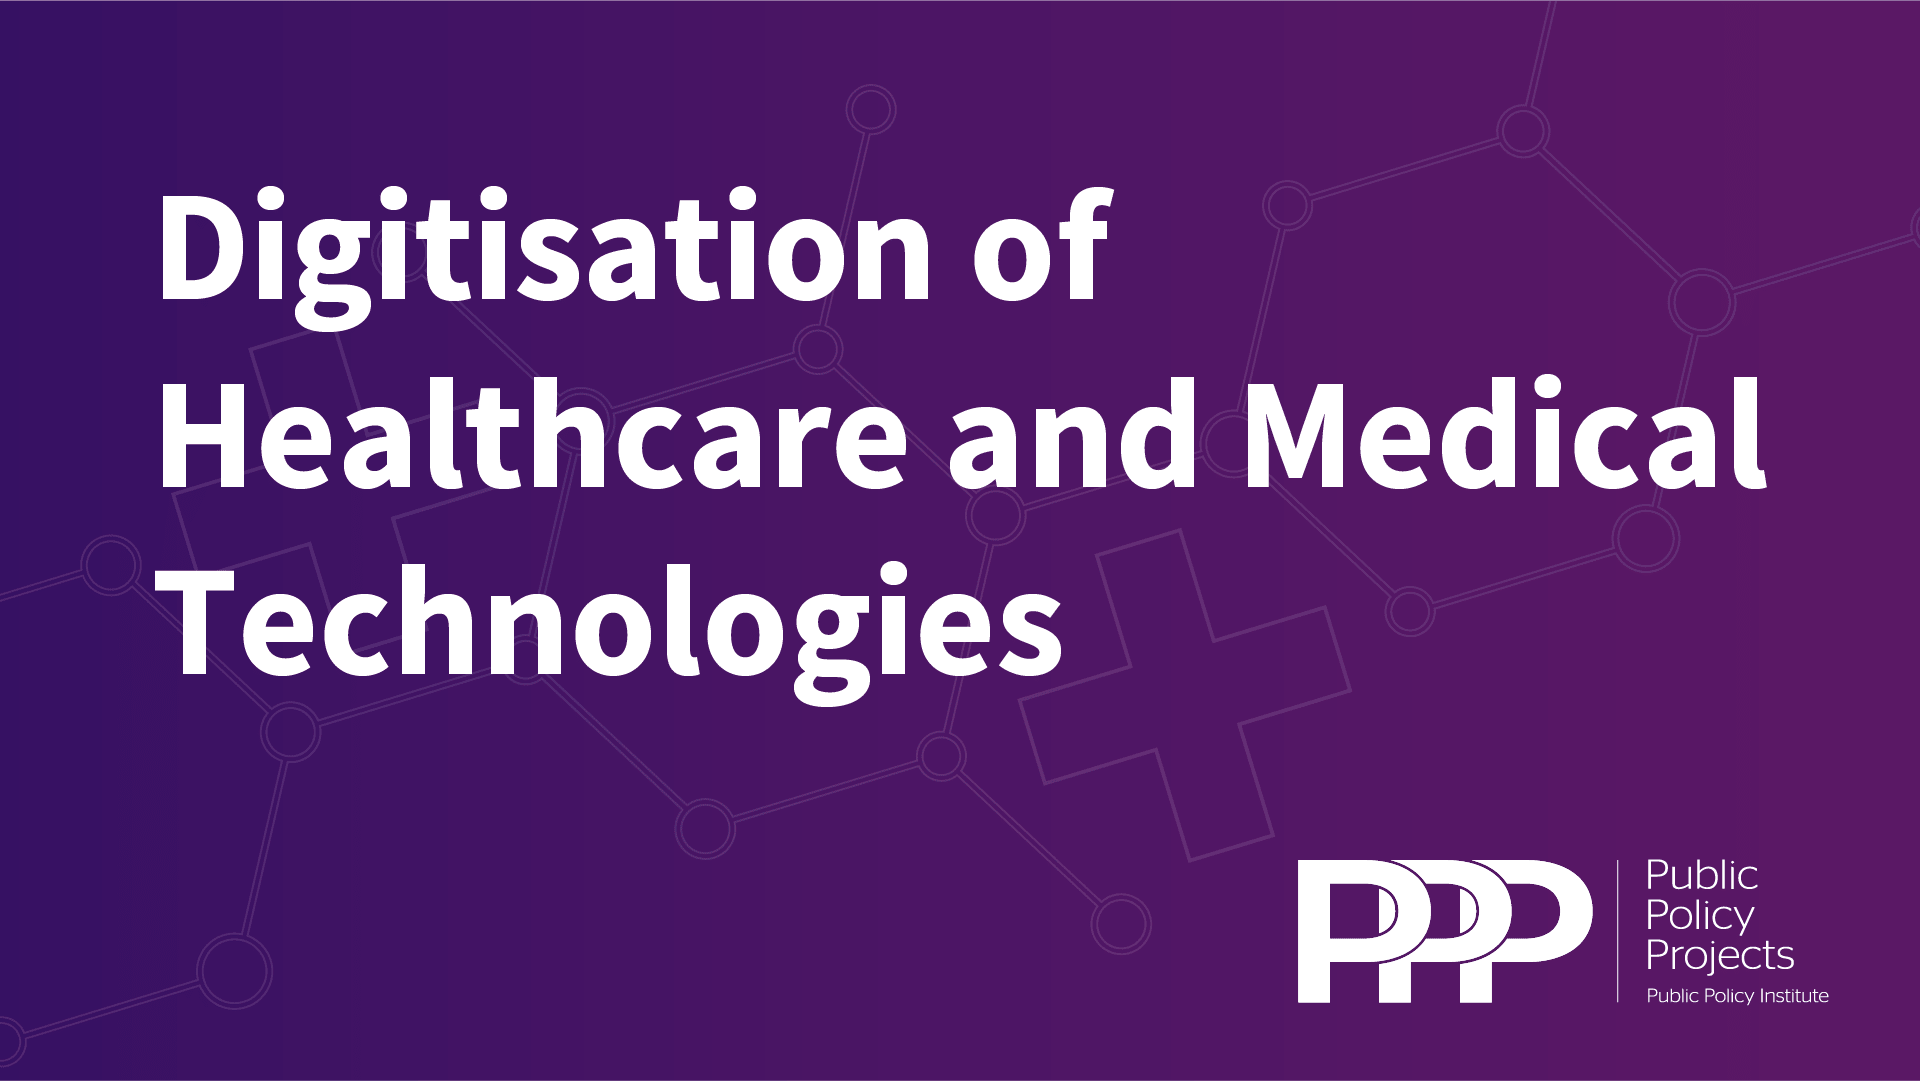 Digitisation of Healthcare and Medical Technologies